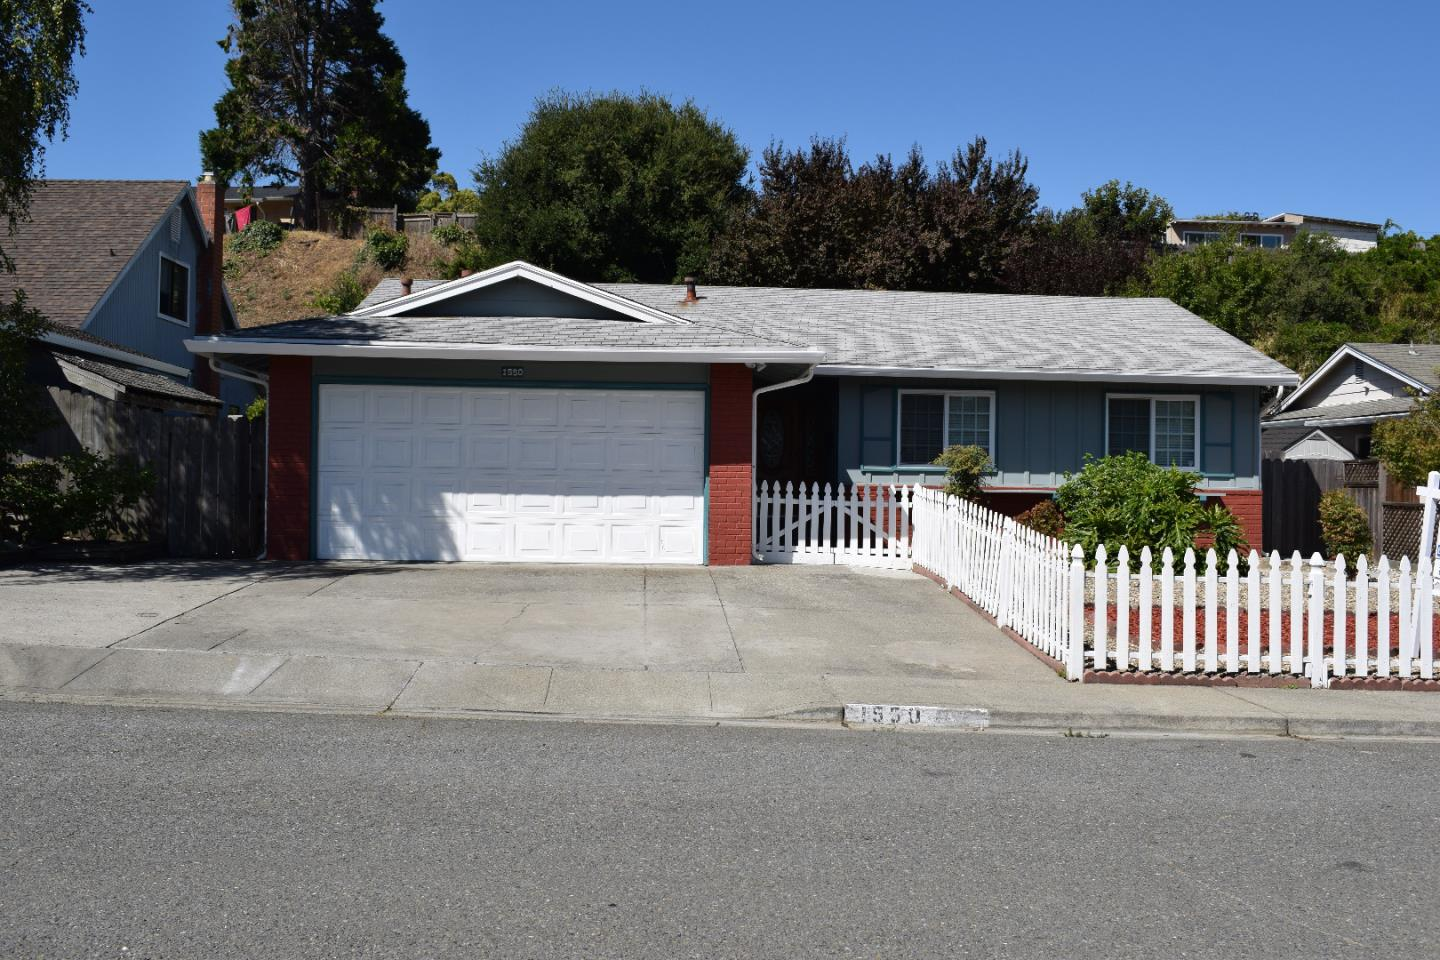 Single Family Home for Sale at 1550 Kildare Way Pinole, California 94564 United States